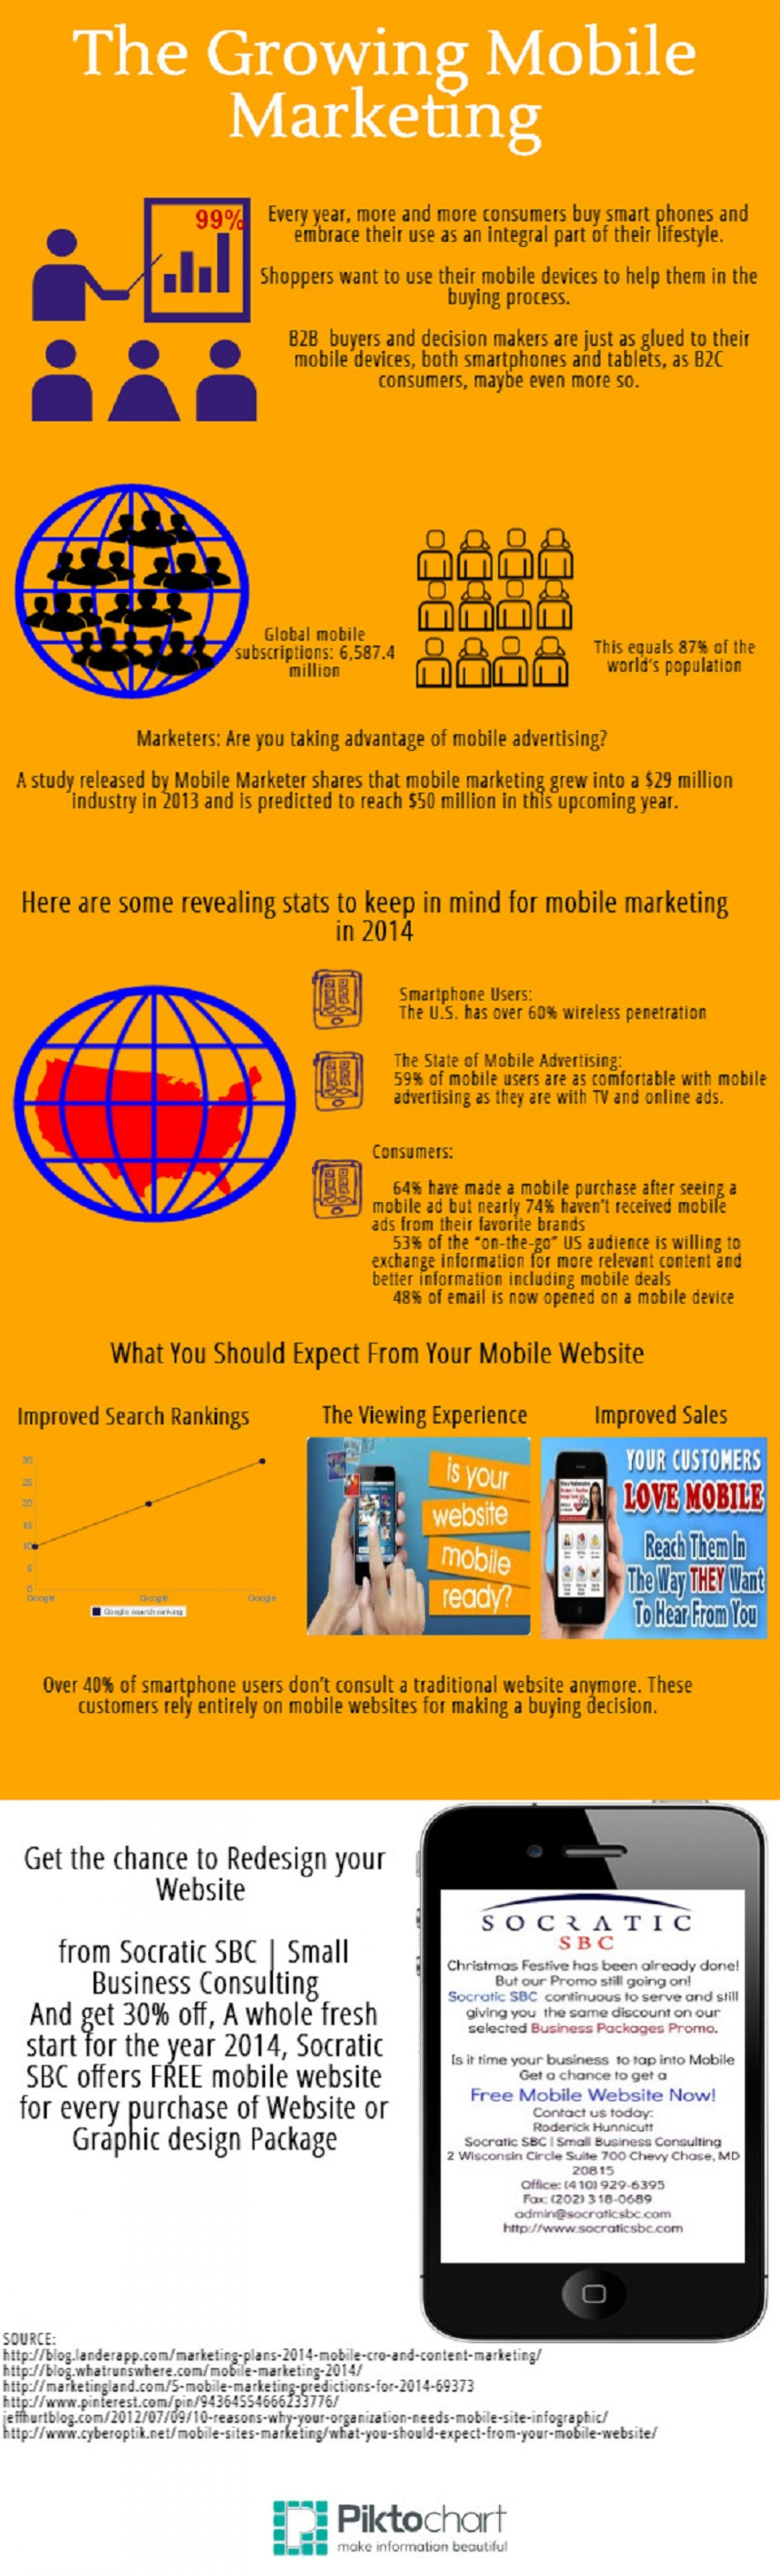 THE GROWING MOBILE MARKETING Infographic